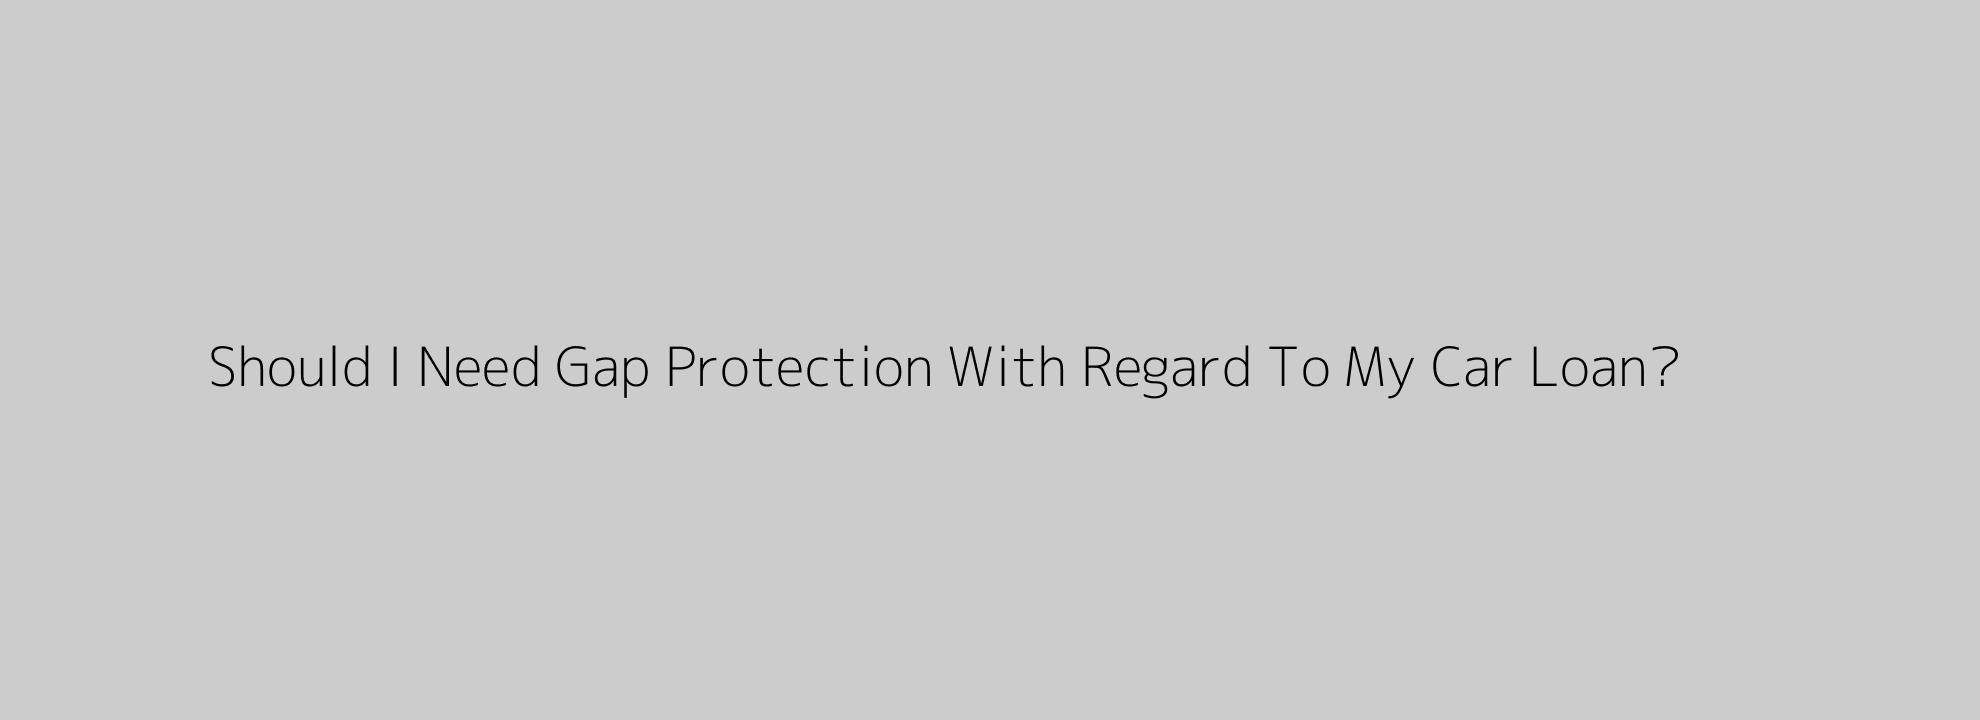 Should I Need Gap Protection With Regard To My Car Loan?